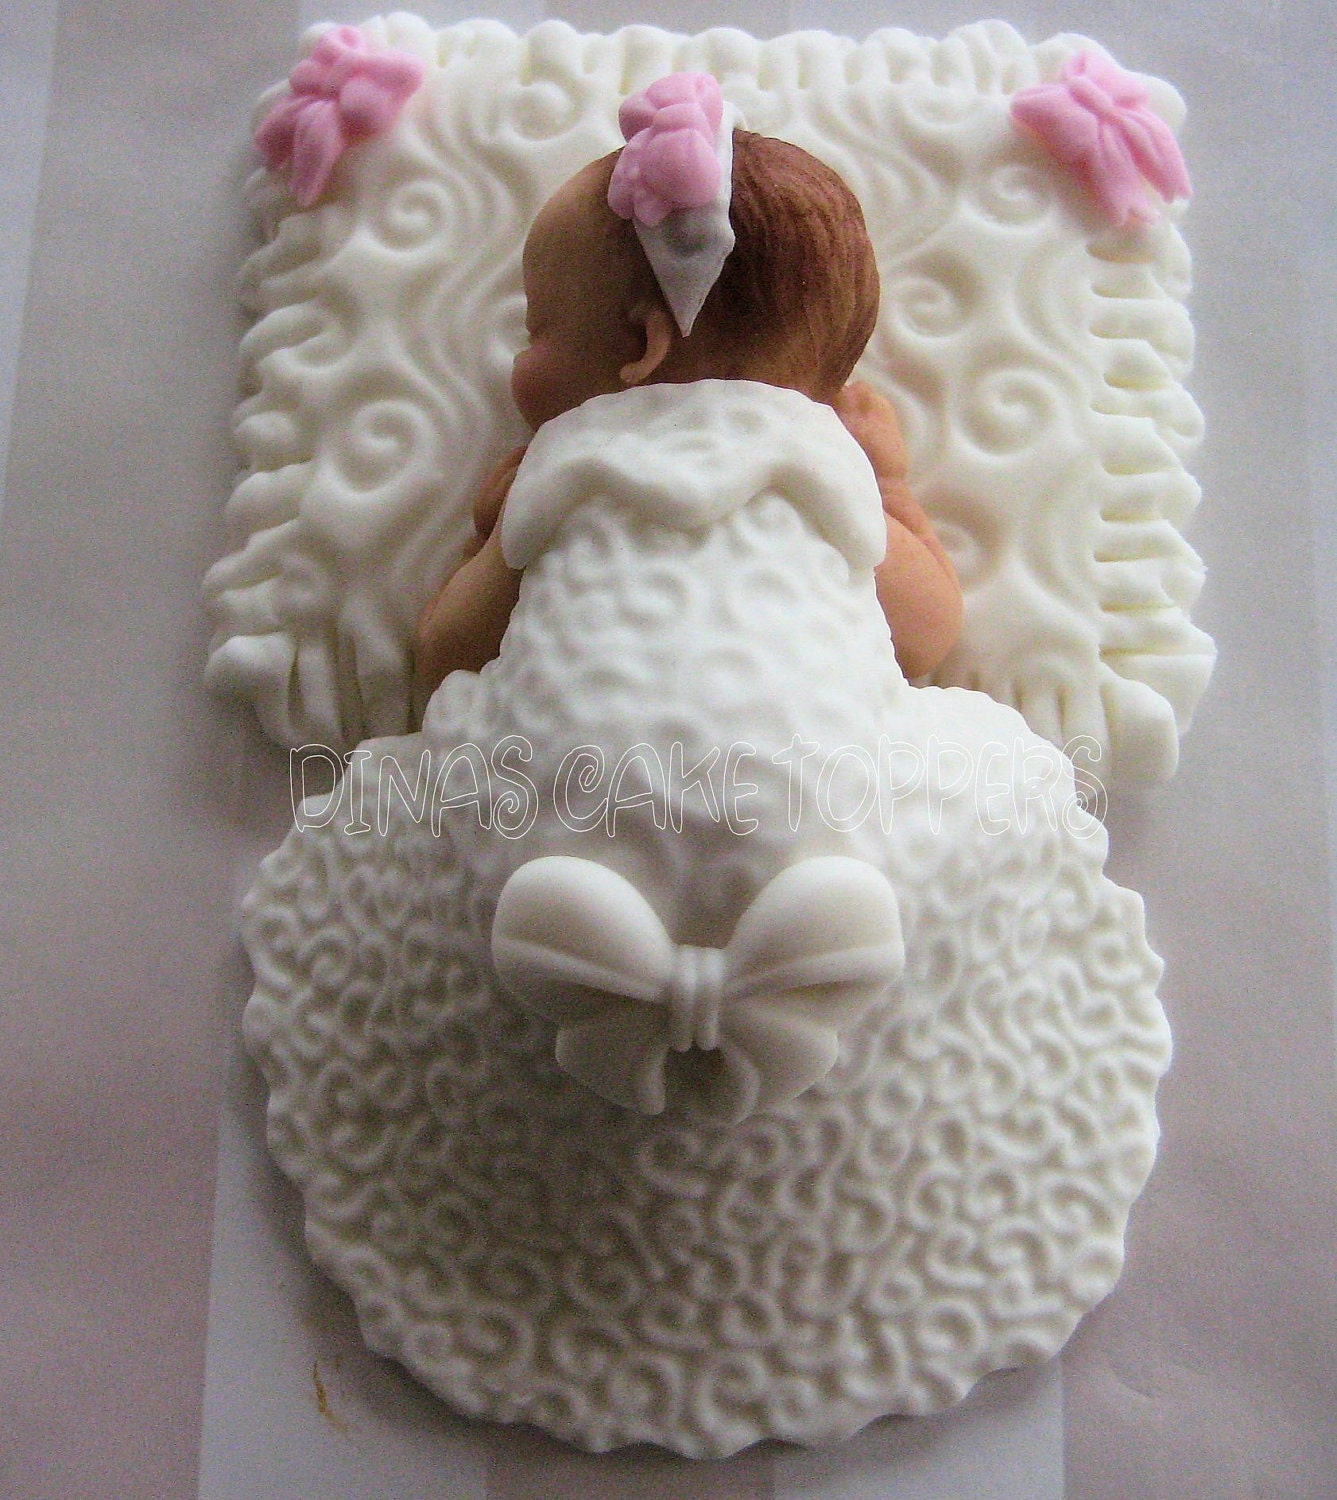 Cake Toppers For Baby Girl Christening : Pin Christening Baptism Baby Girl Cake Topper By ...